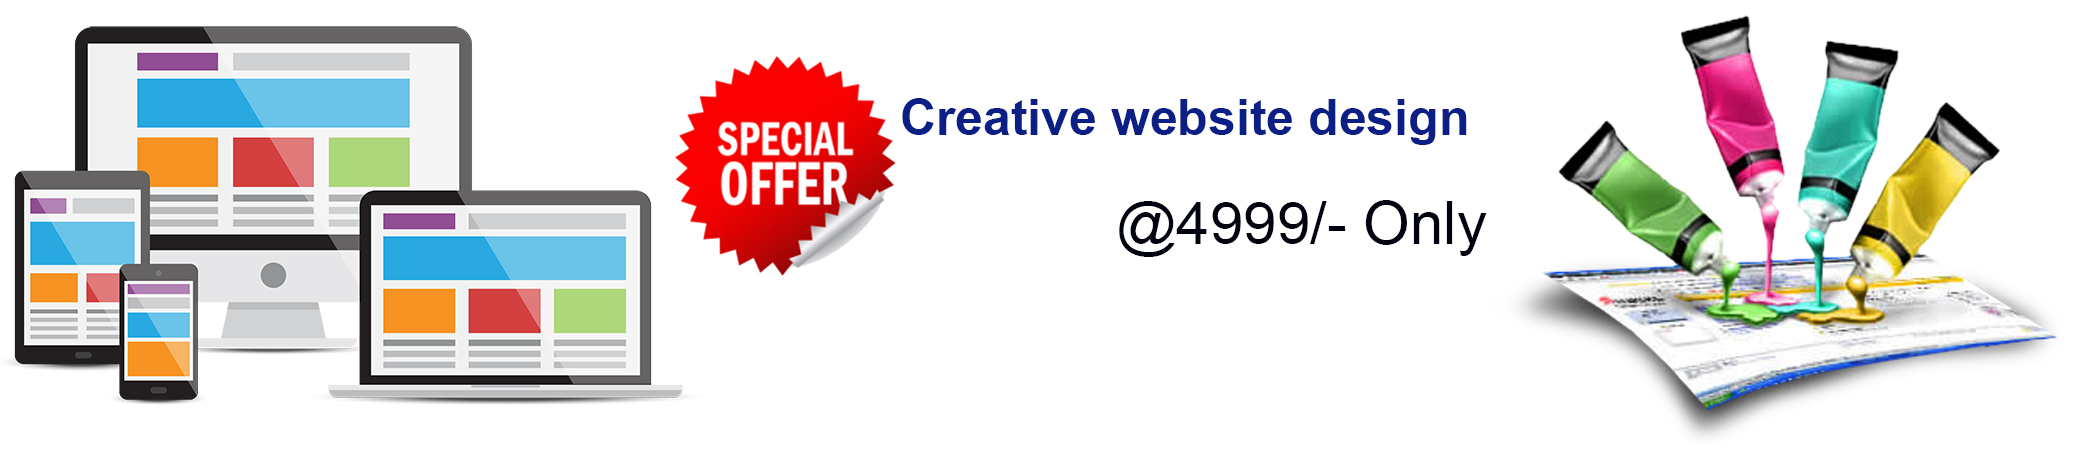 creative-websitedesign-ahmedabad